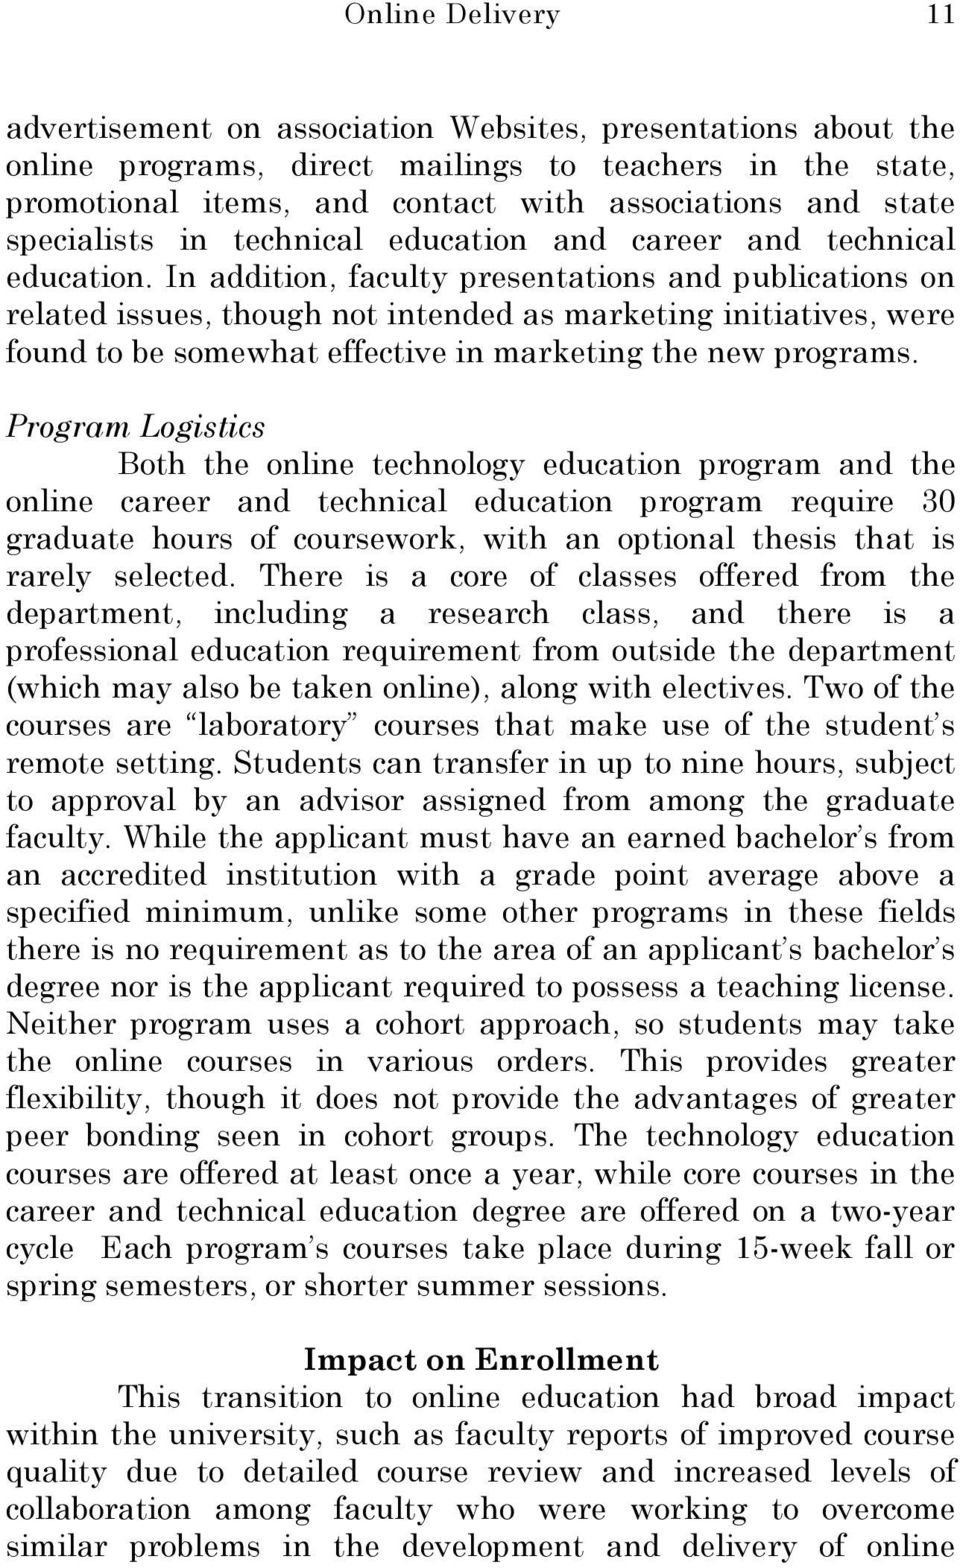 In addition, faculty presentations and publications on related issues, though not intended as marketing initiatives, were found to be somewhat effective in marketing the new programs.